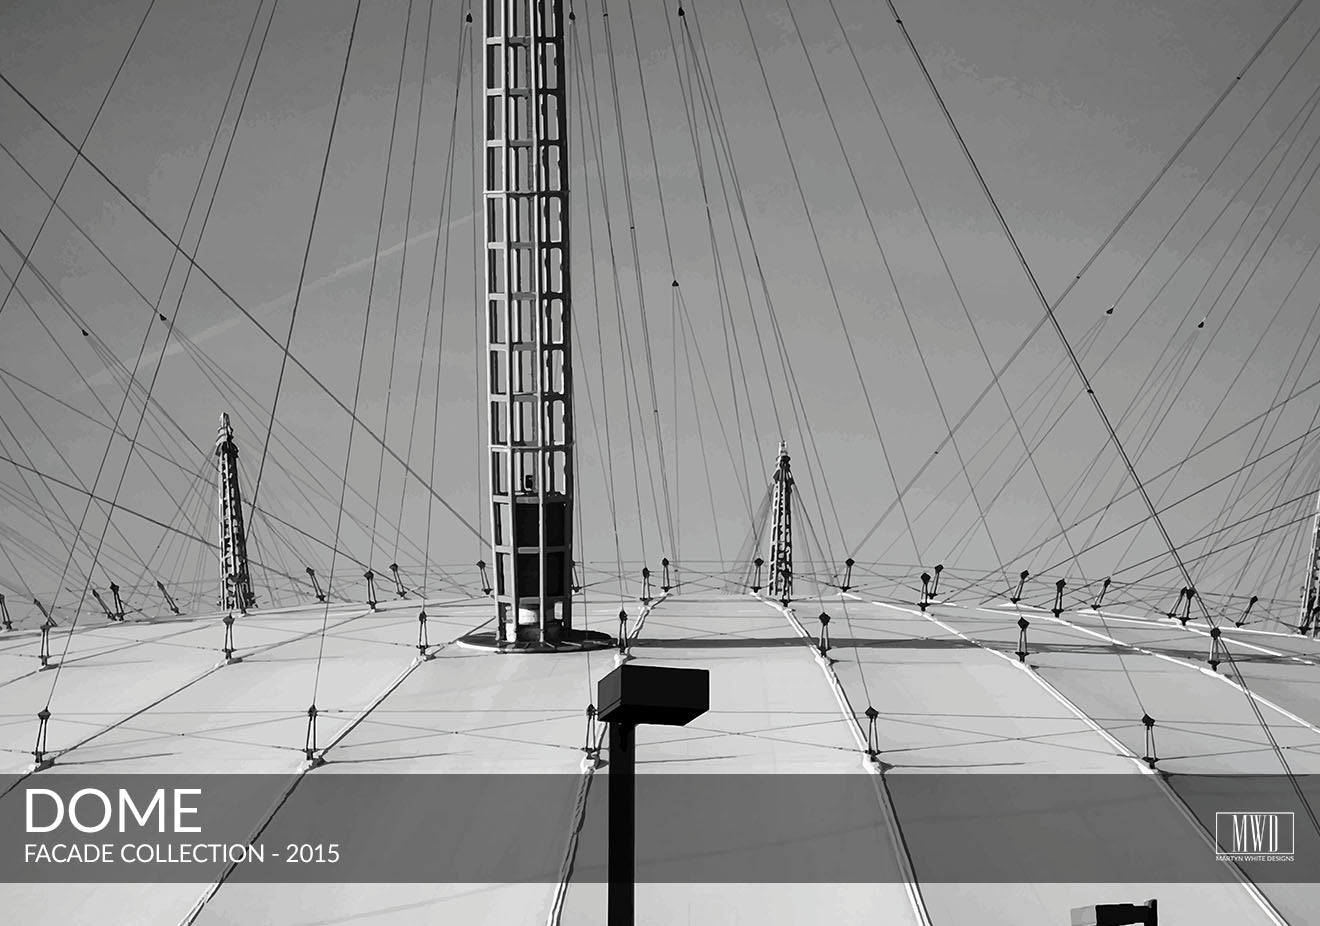 O2 London Dome photography